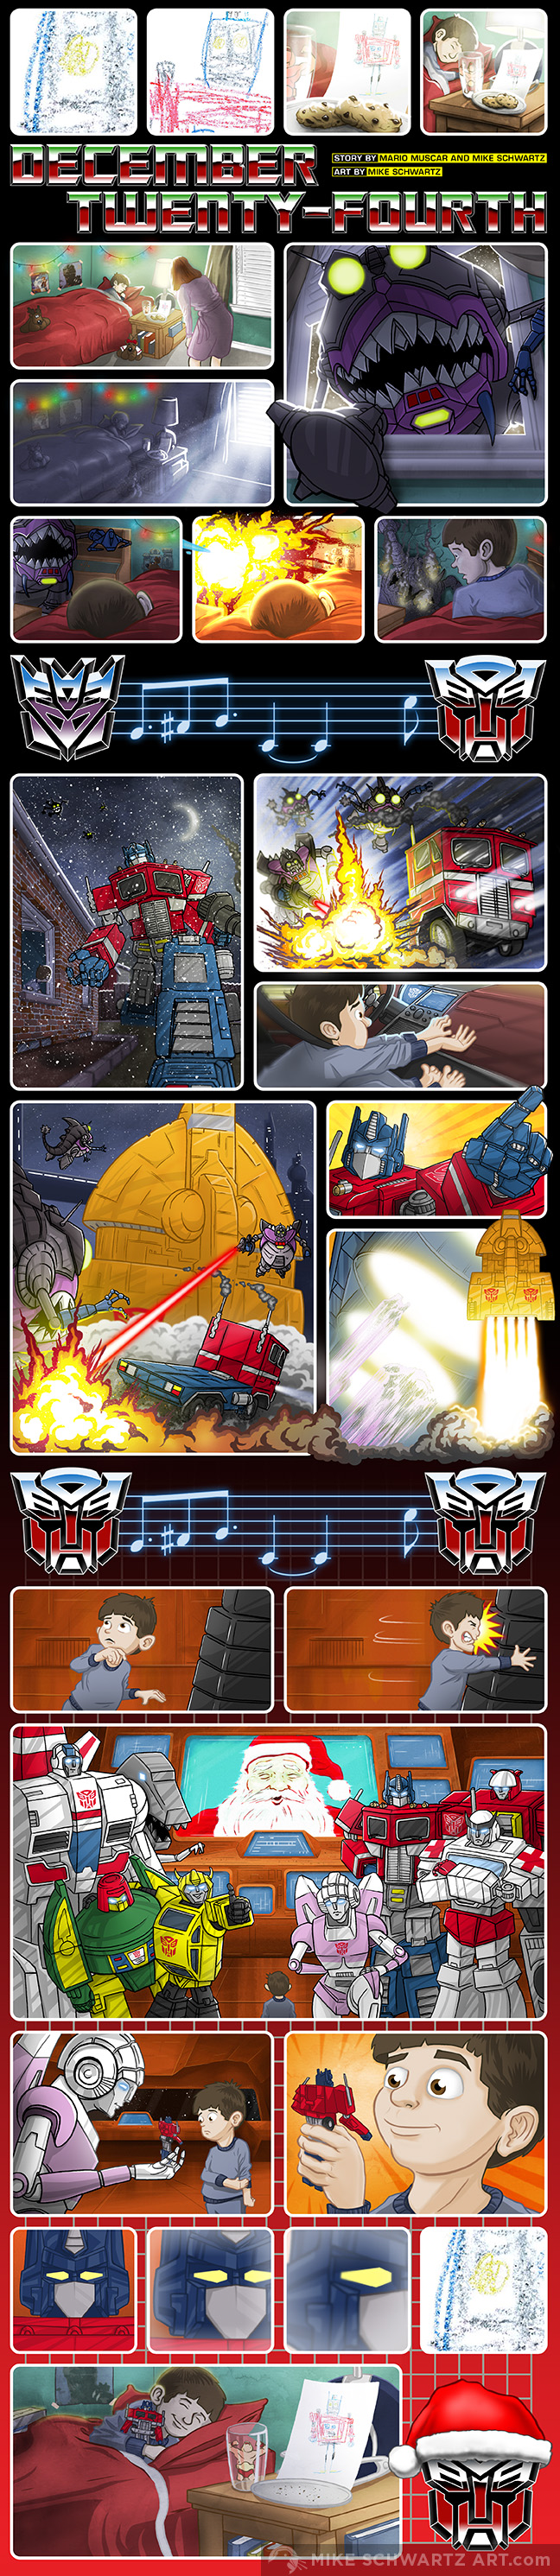 Mike-Schwartz-Illustration-December-Twenty-Fourth-Transformers-Full.jpg